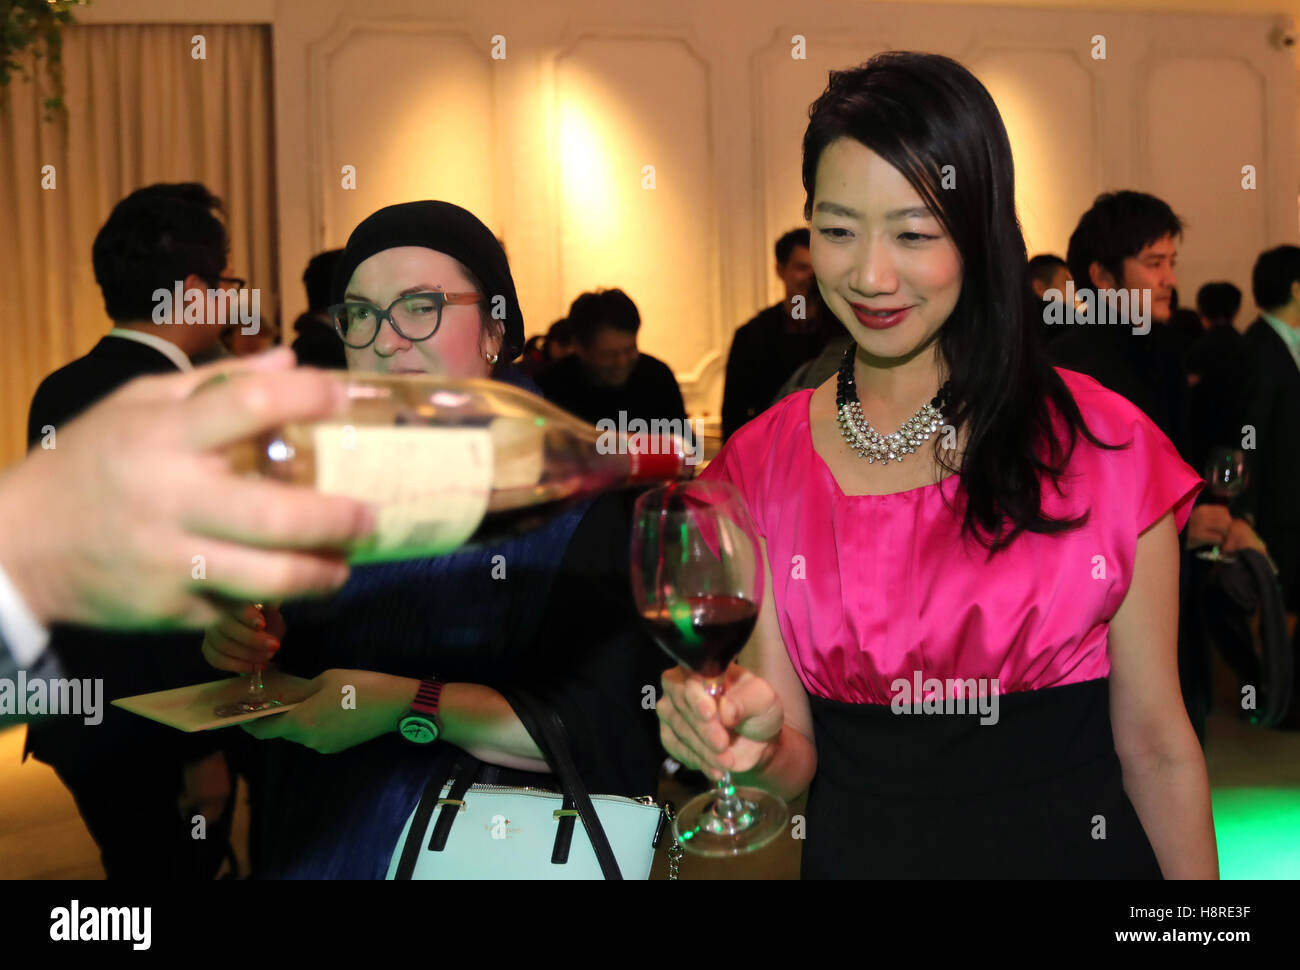 6b37edeb4 Tokyo, Japan. 17th Nov, 2016. Japanese wine lovers drink the 2016 vintage  Beaujolais Nouveau wine at a countdown event in Tokyo on Thursday, November  17, ...